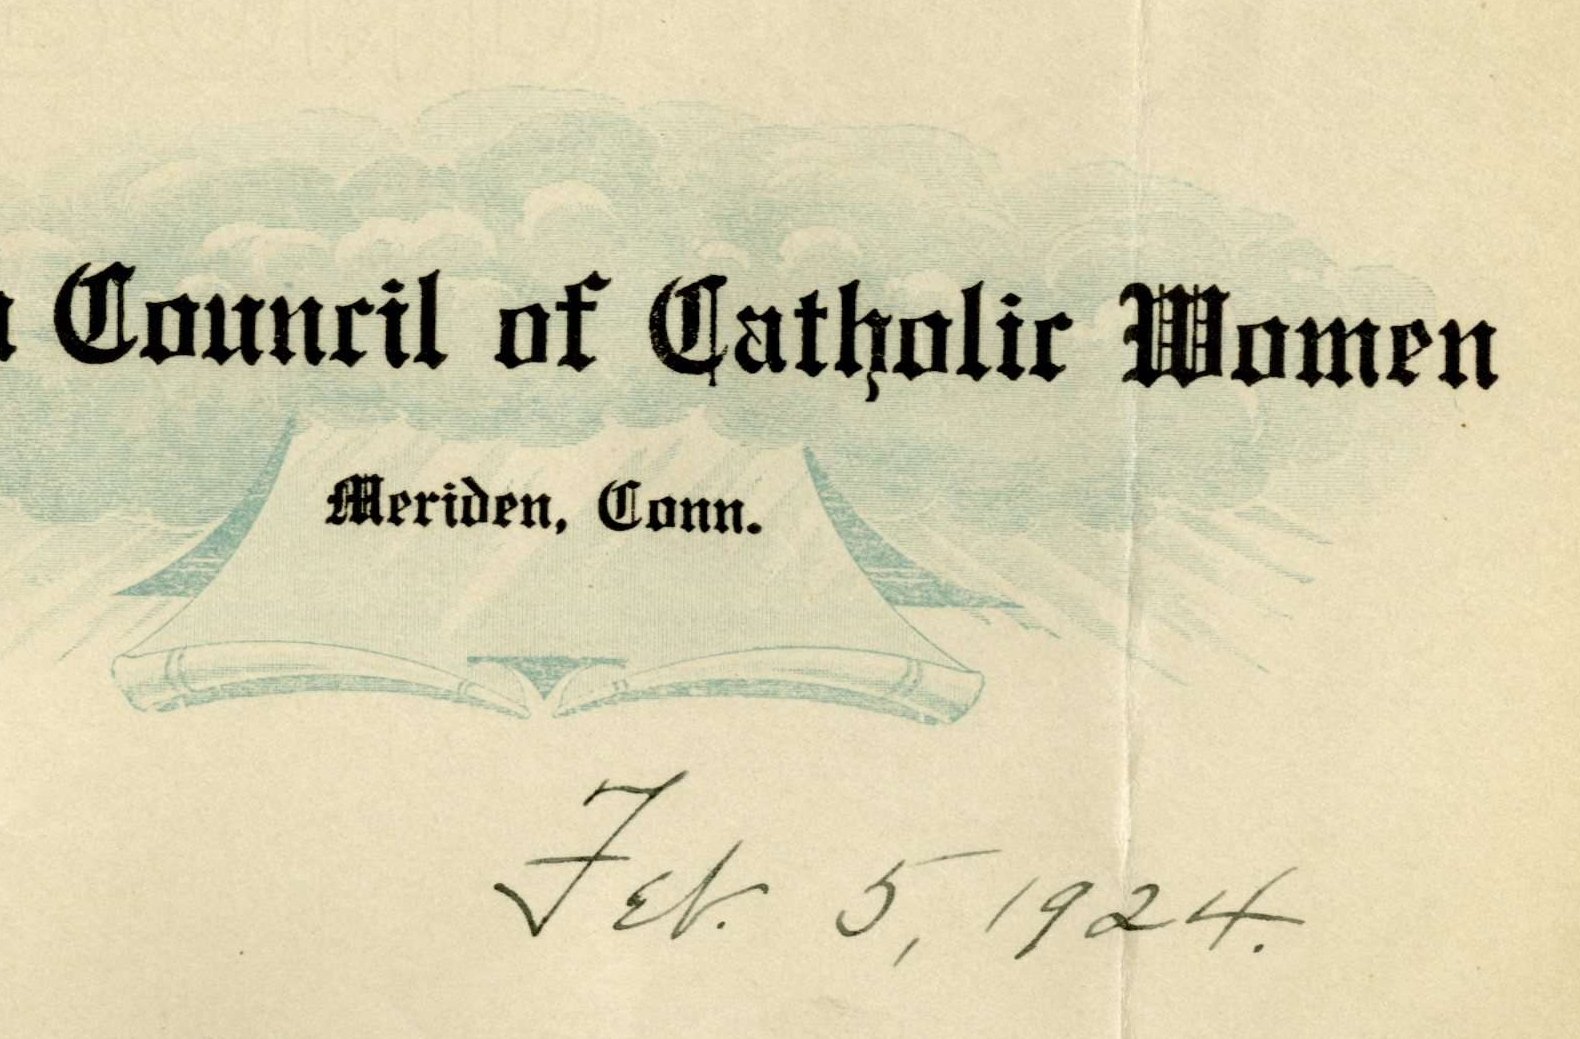 Petition from Connecticut Council of Catholic Women of Hartford and Meriden